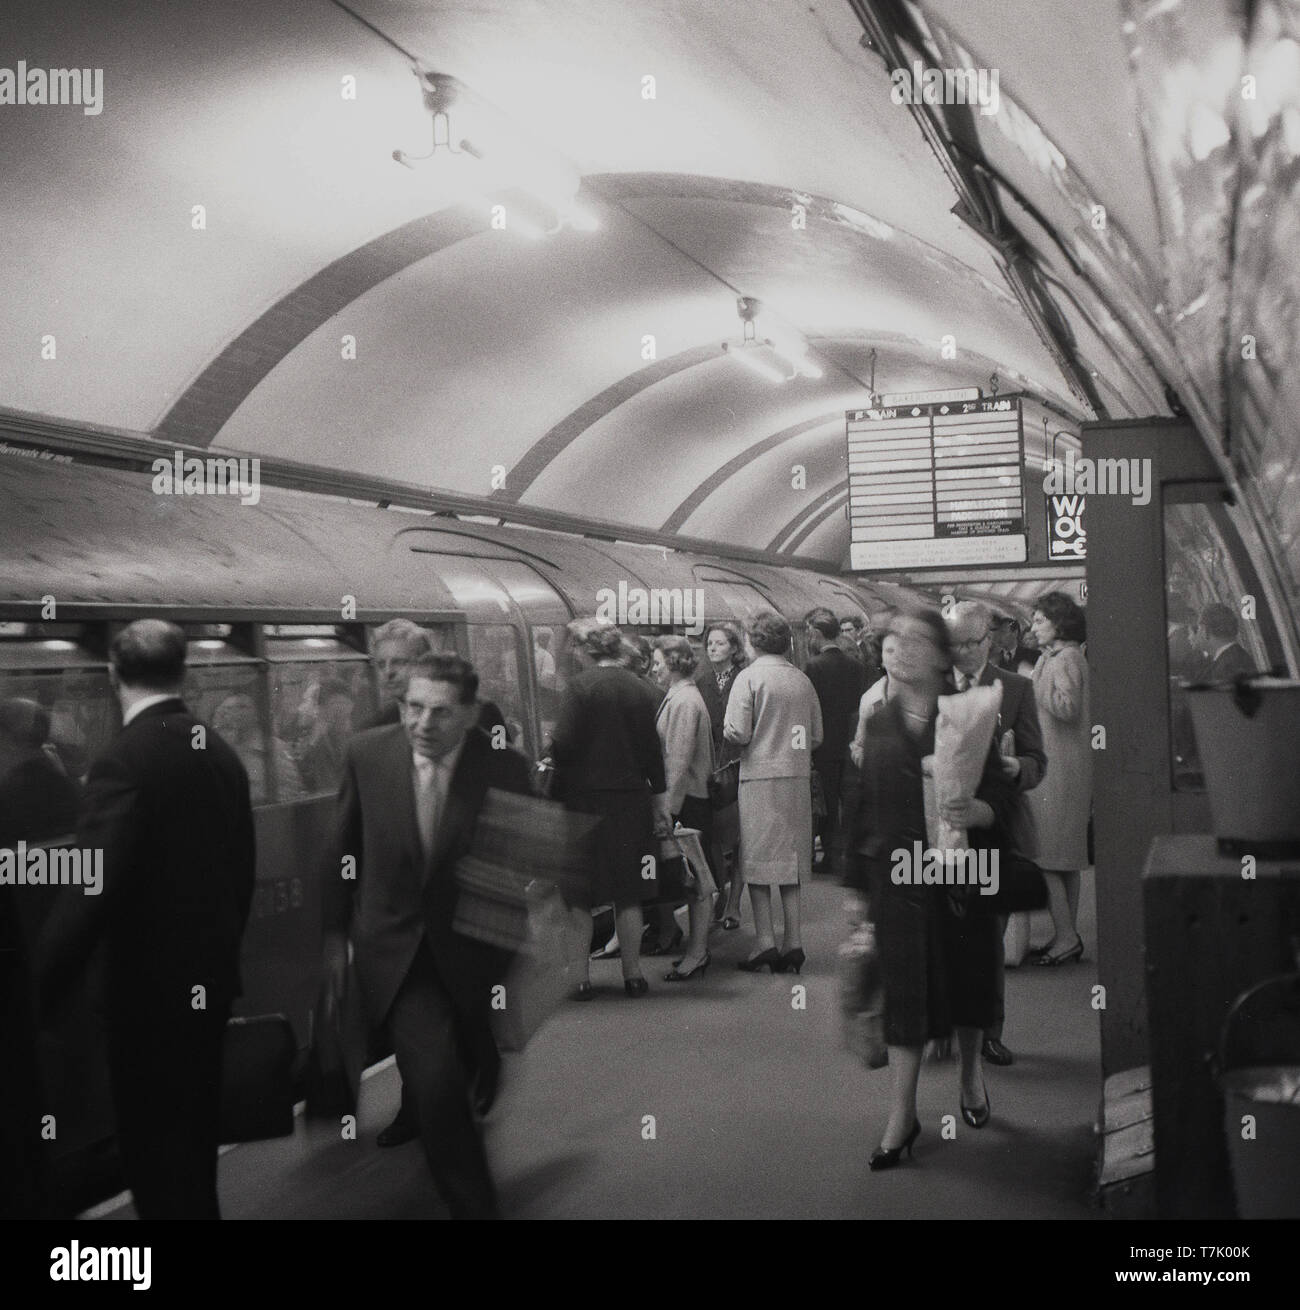 1960s, historical picture of London Underground, a tube train on the Bakerloo line at a platform, people getting on and off the train, London, England, UK. Opened in 1906, the Bakerloo line runs from north-west london to south london via the west end. Stock Photo